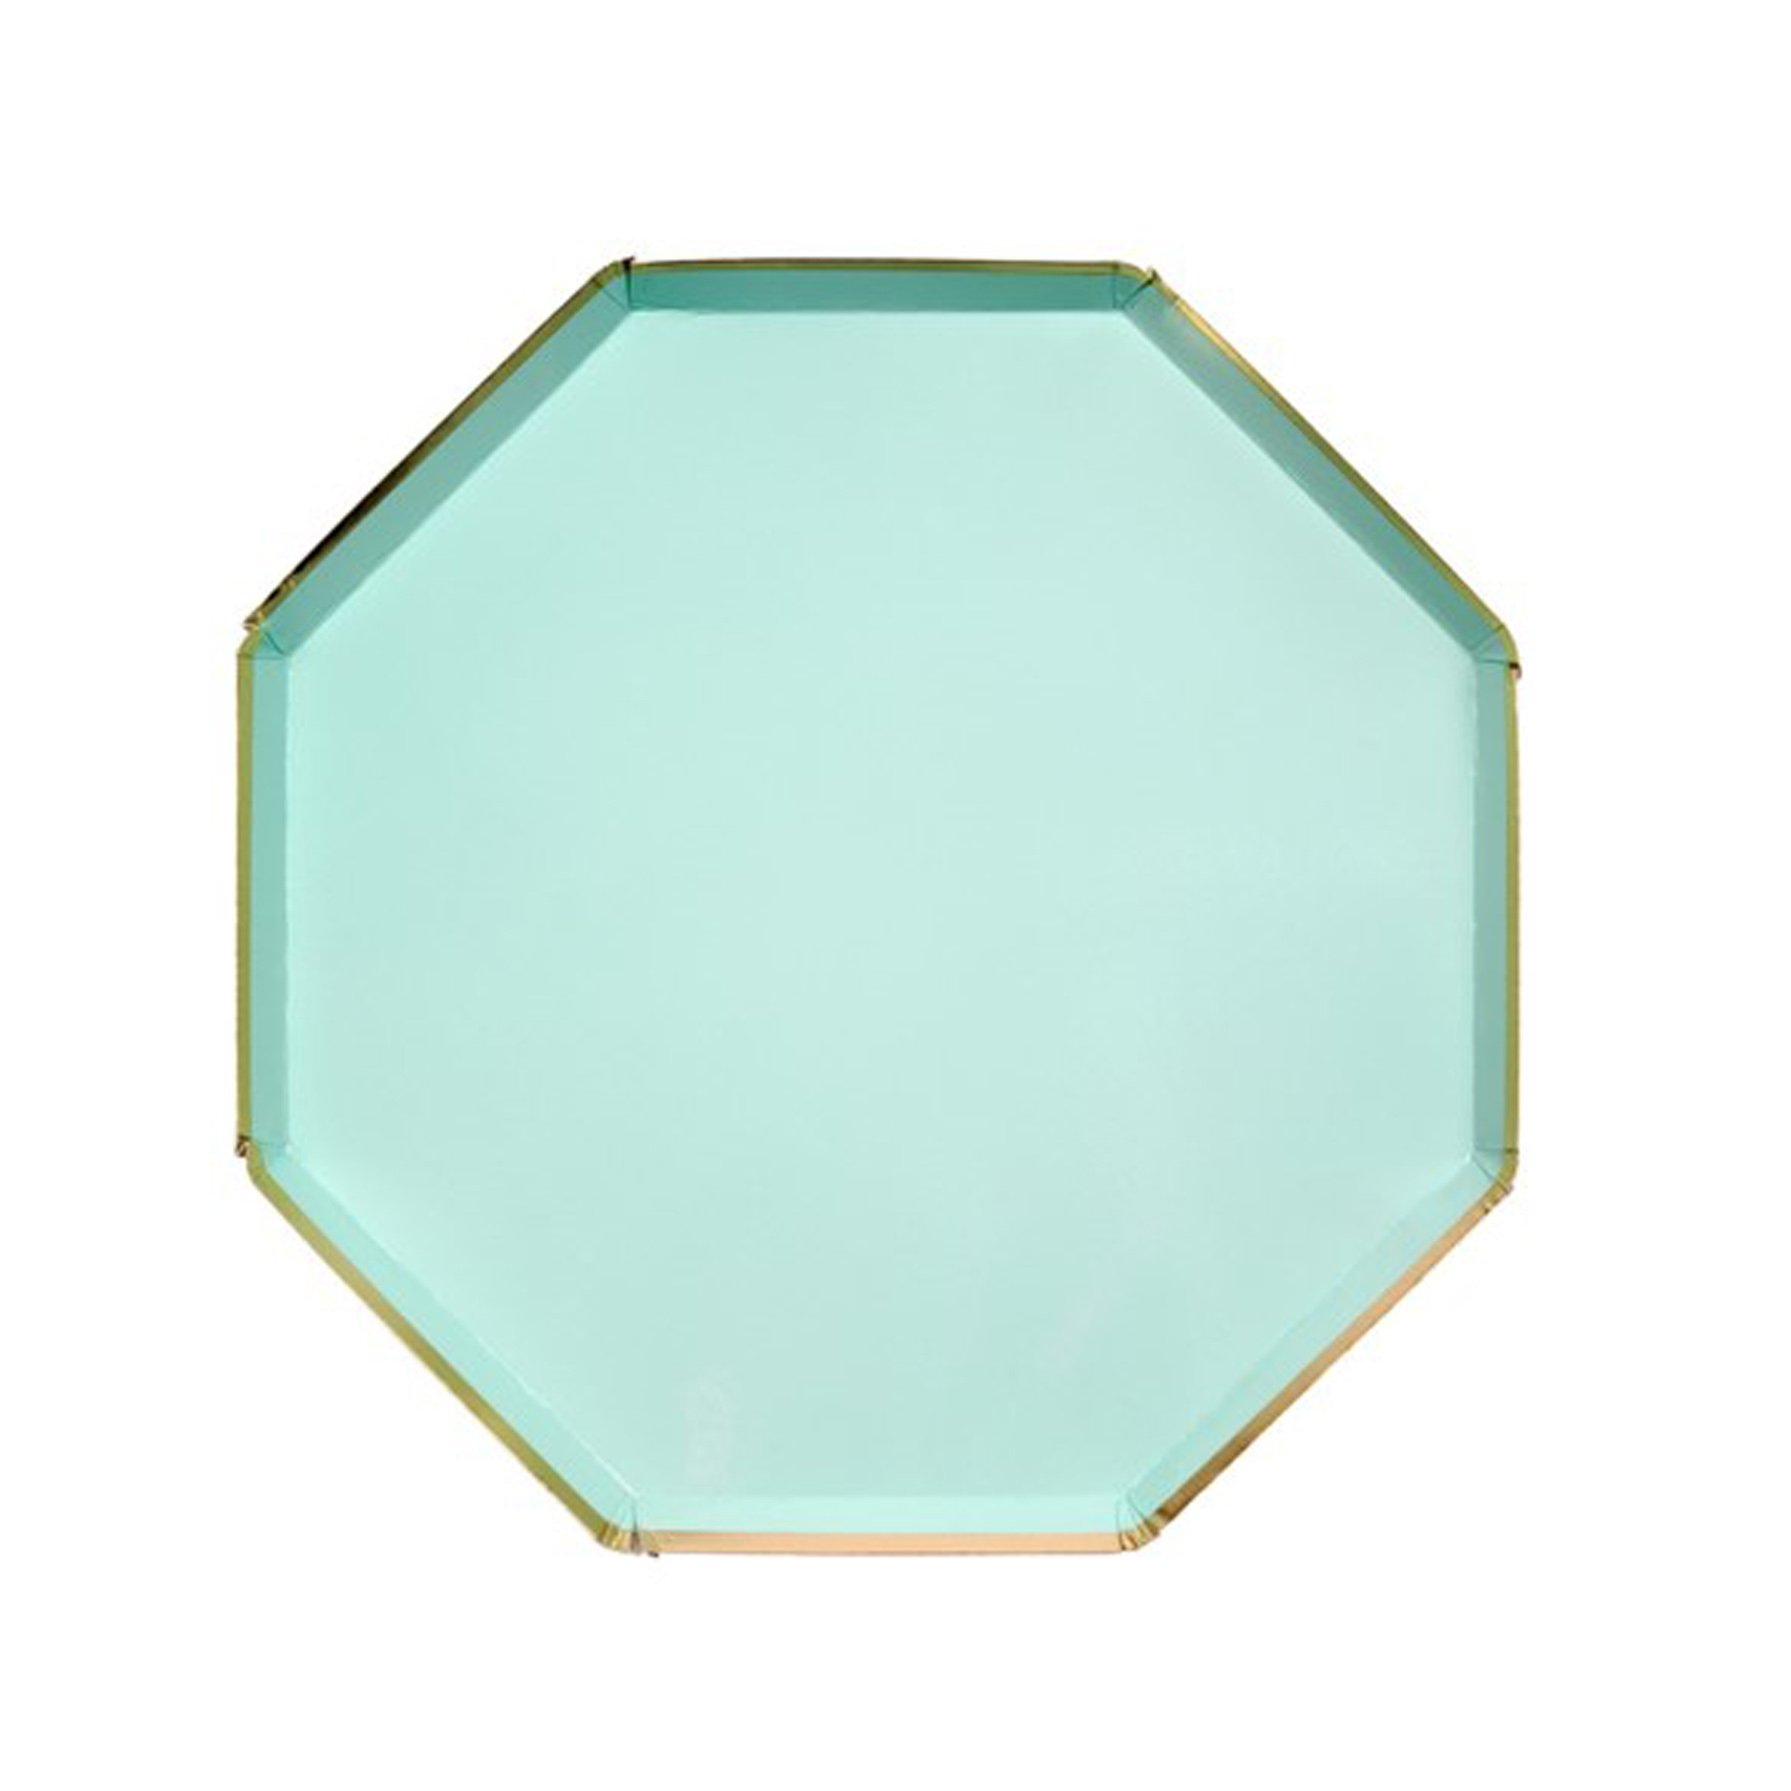 BUY ME / NEW ITEM $10.99 each Mint Green Octagonal Large Paper Plates - 8 Pack